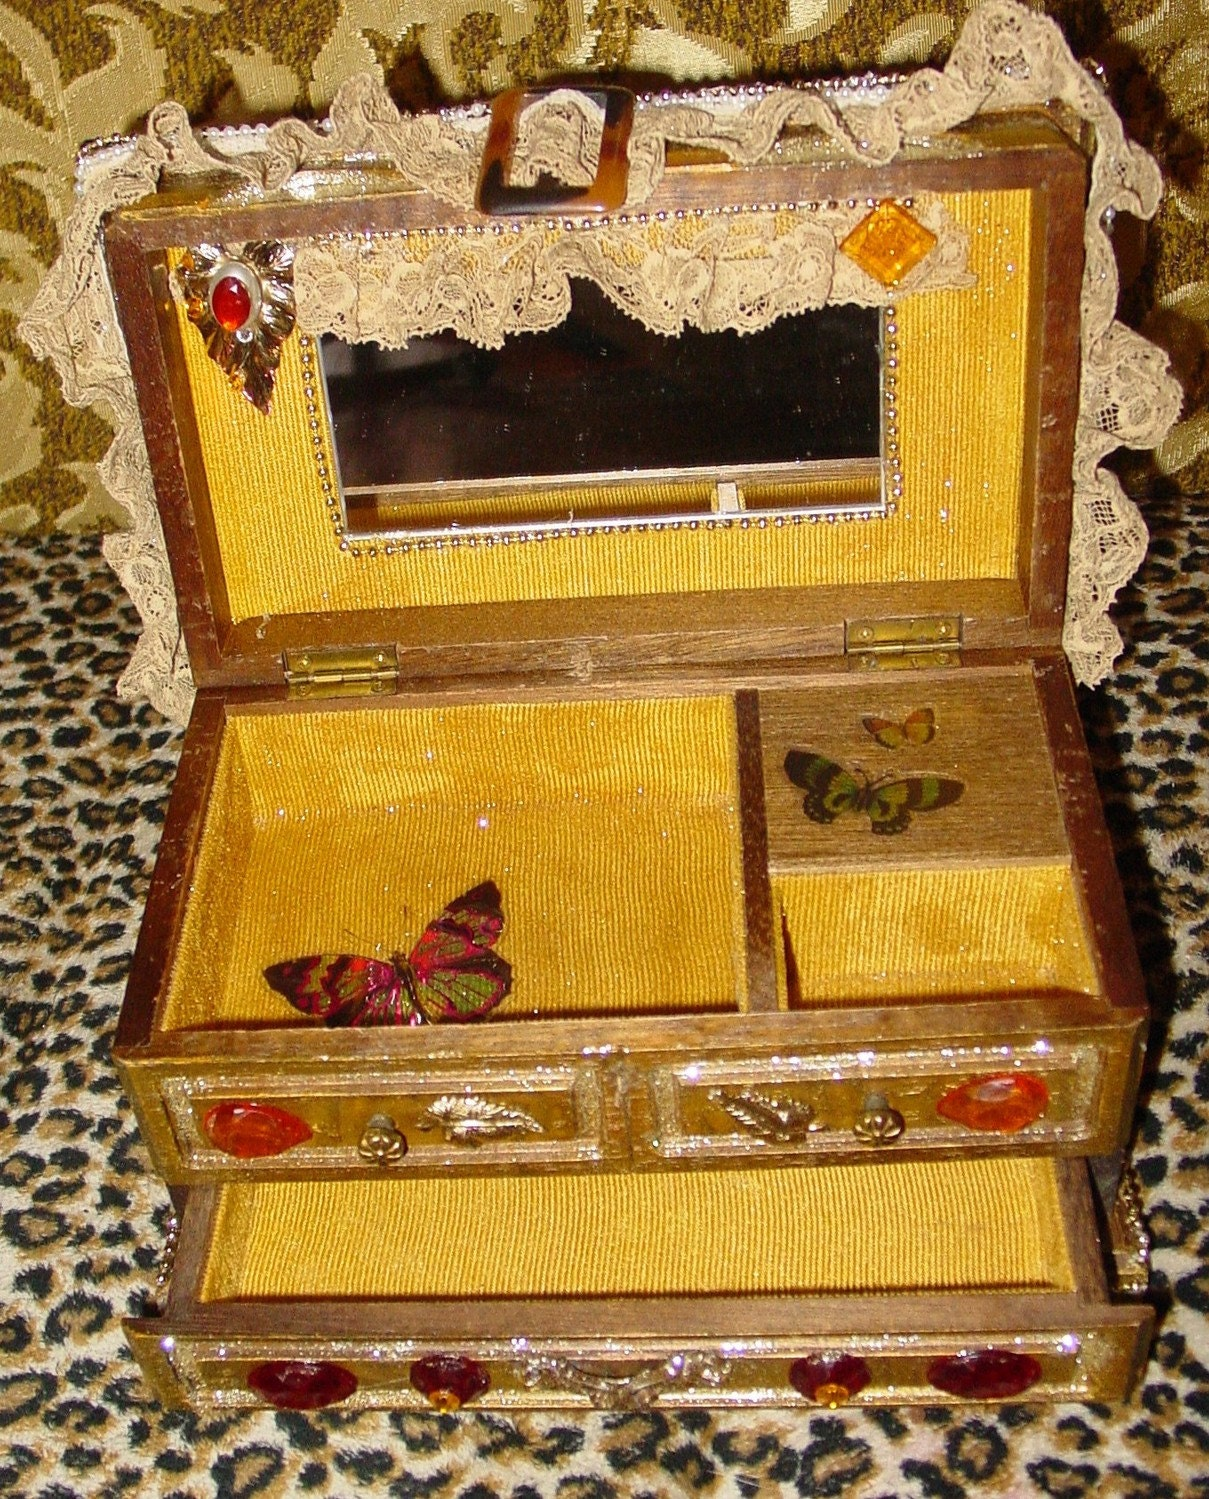 Recycled  KITSCH vintage hardwood jewerly box  by C. Reinke